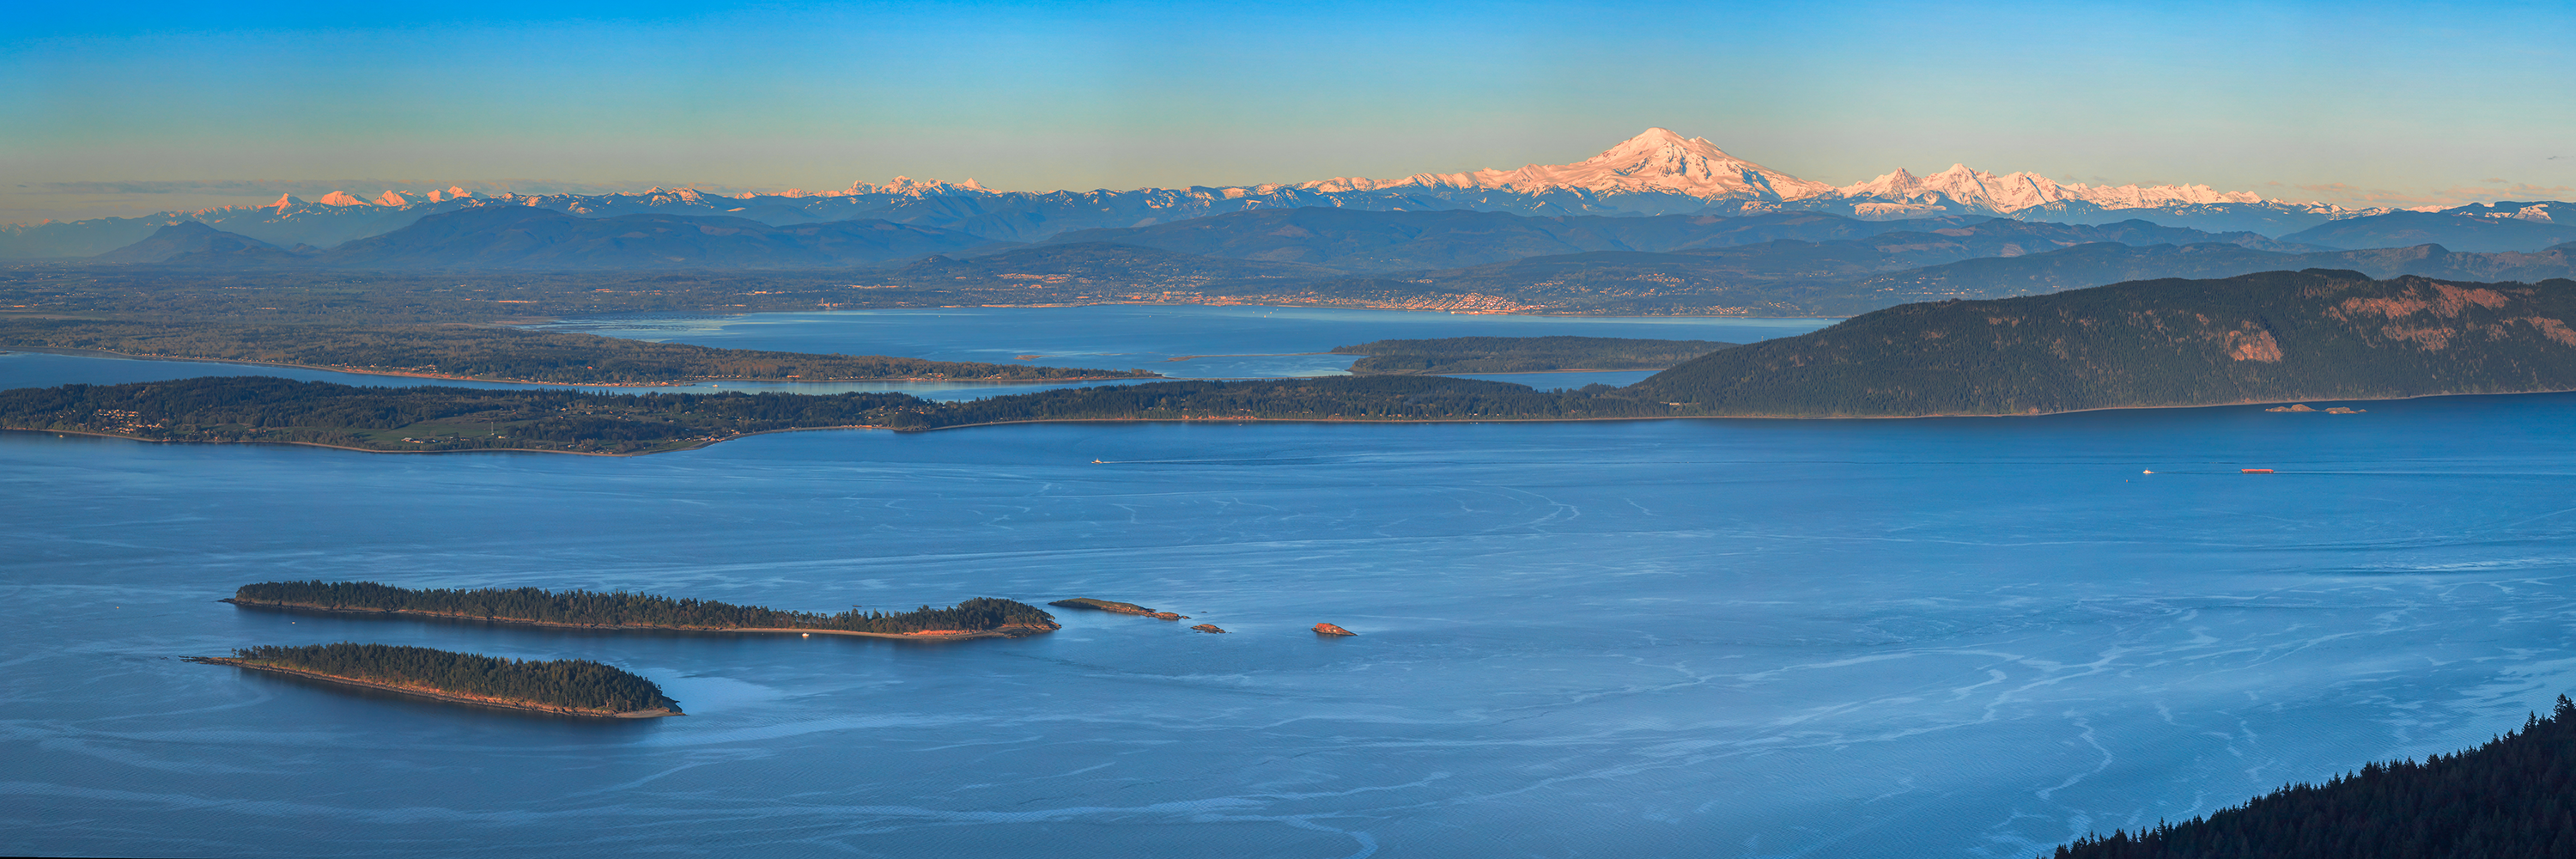 From above image of San Juan Islands, the sea and mountain range in distance